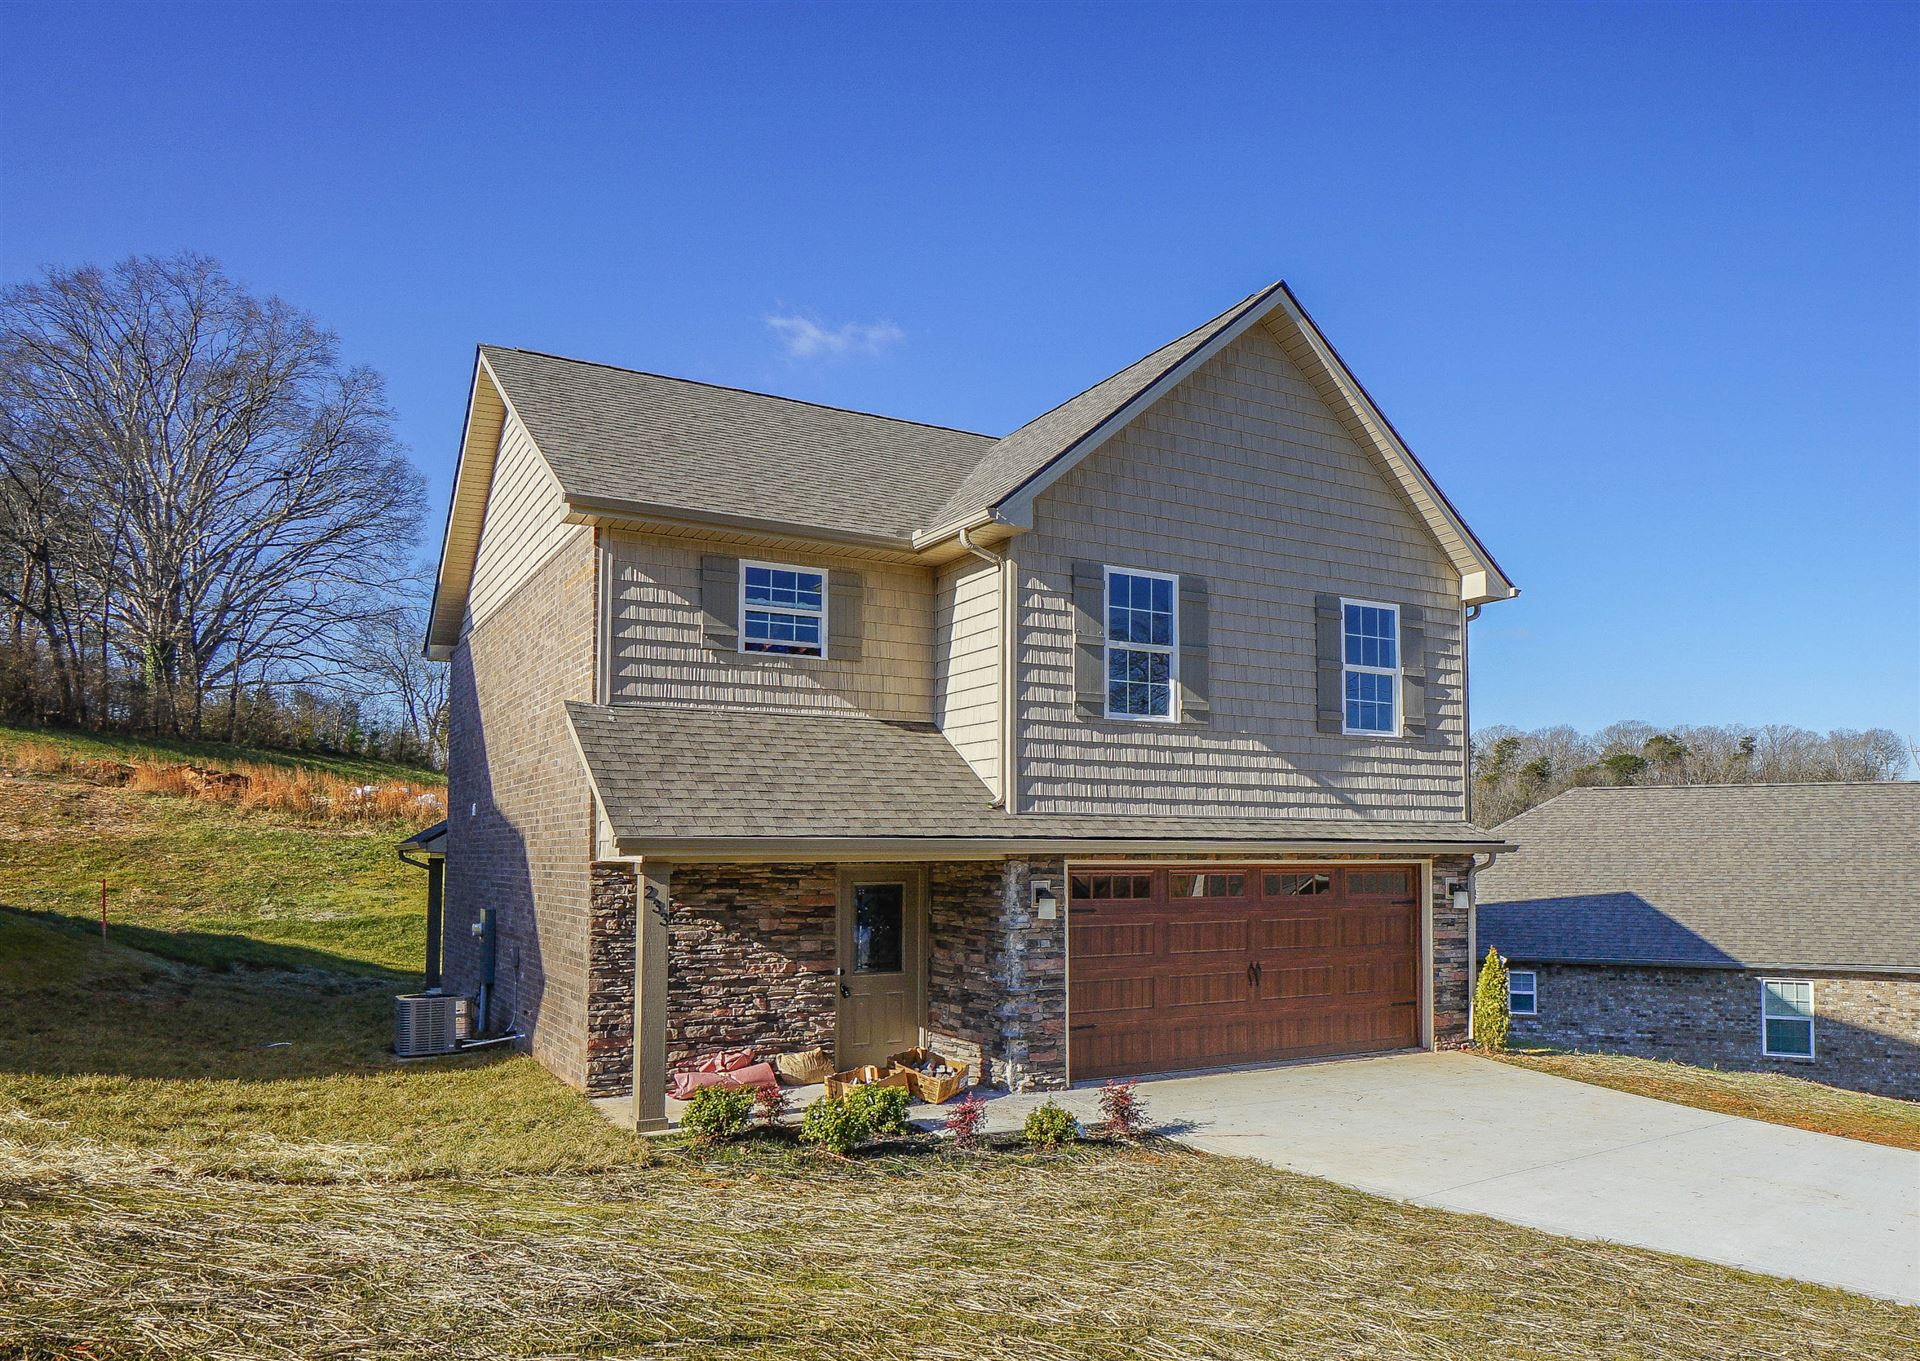 Photo of 233 Conner Lane, Lenoir City, TN 37772 (MLS # 1132642)